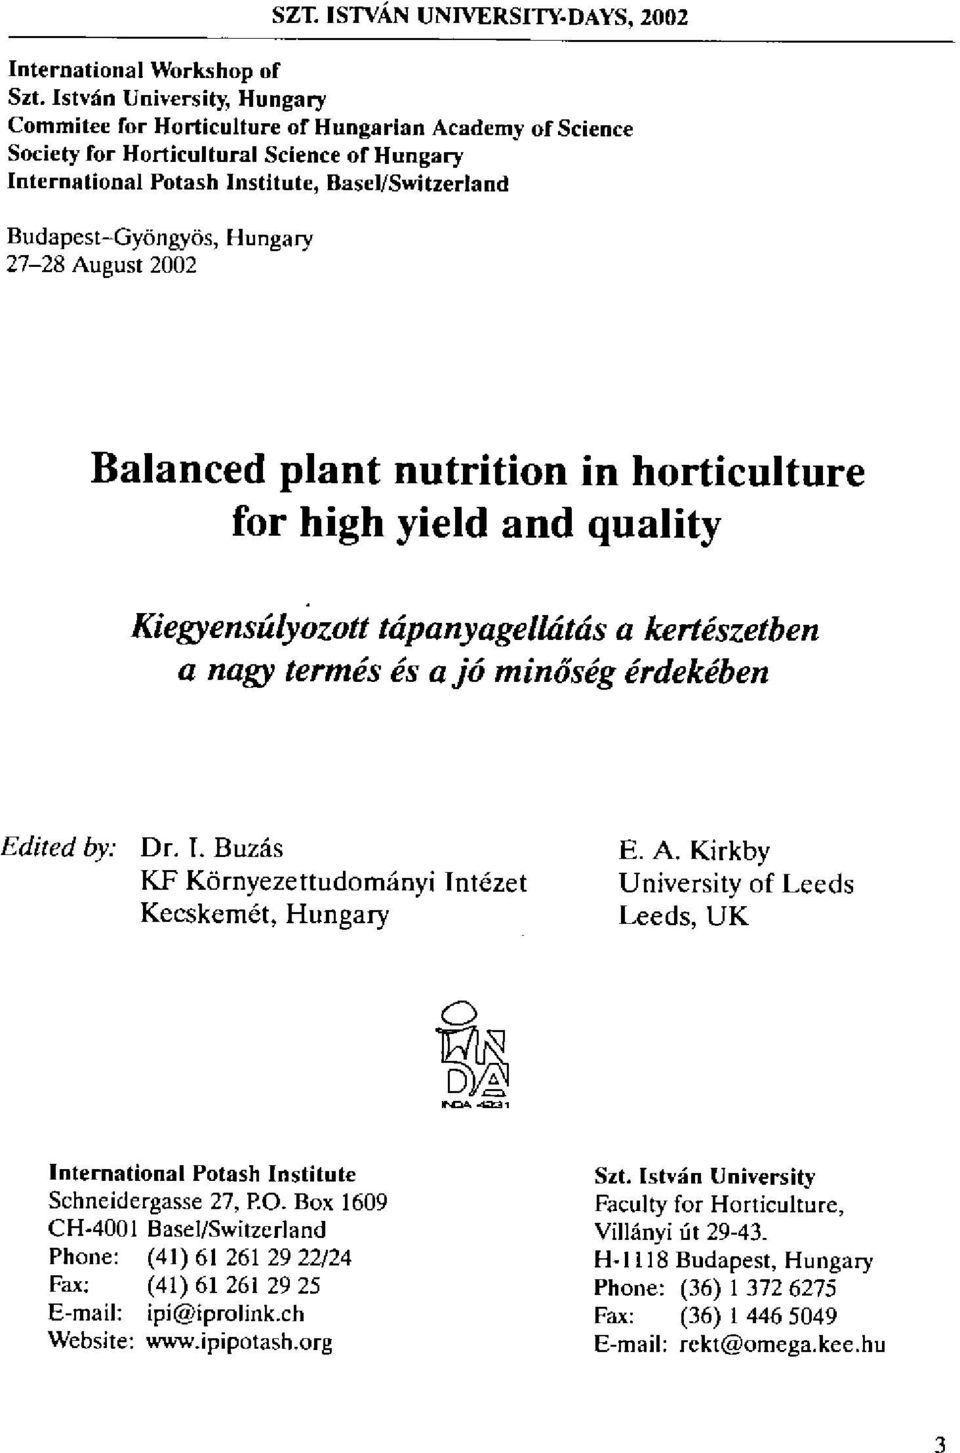 Hungary 27-28 August 2002 Balanced plant nutrition in horticulture for high yield and quality Kiegyensdilyozott tdpanyagelldtds a kert~szetben a nagy termes es a j6 mindsdg crdekdben Edited by: Dr. I.